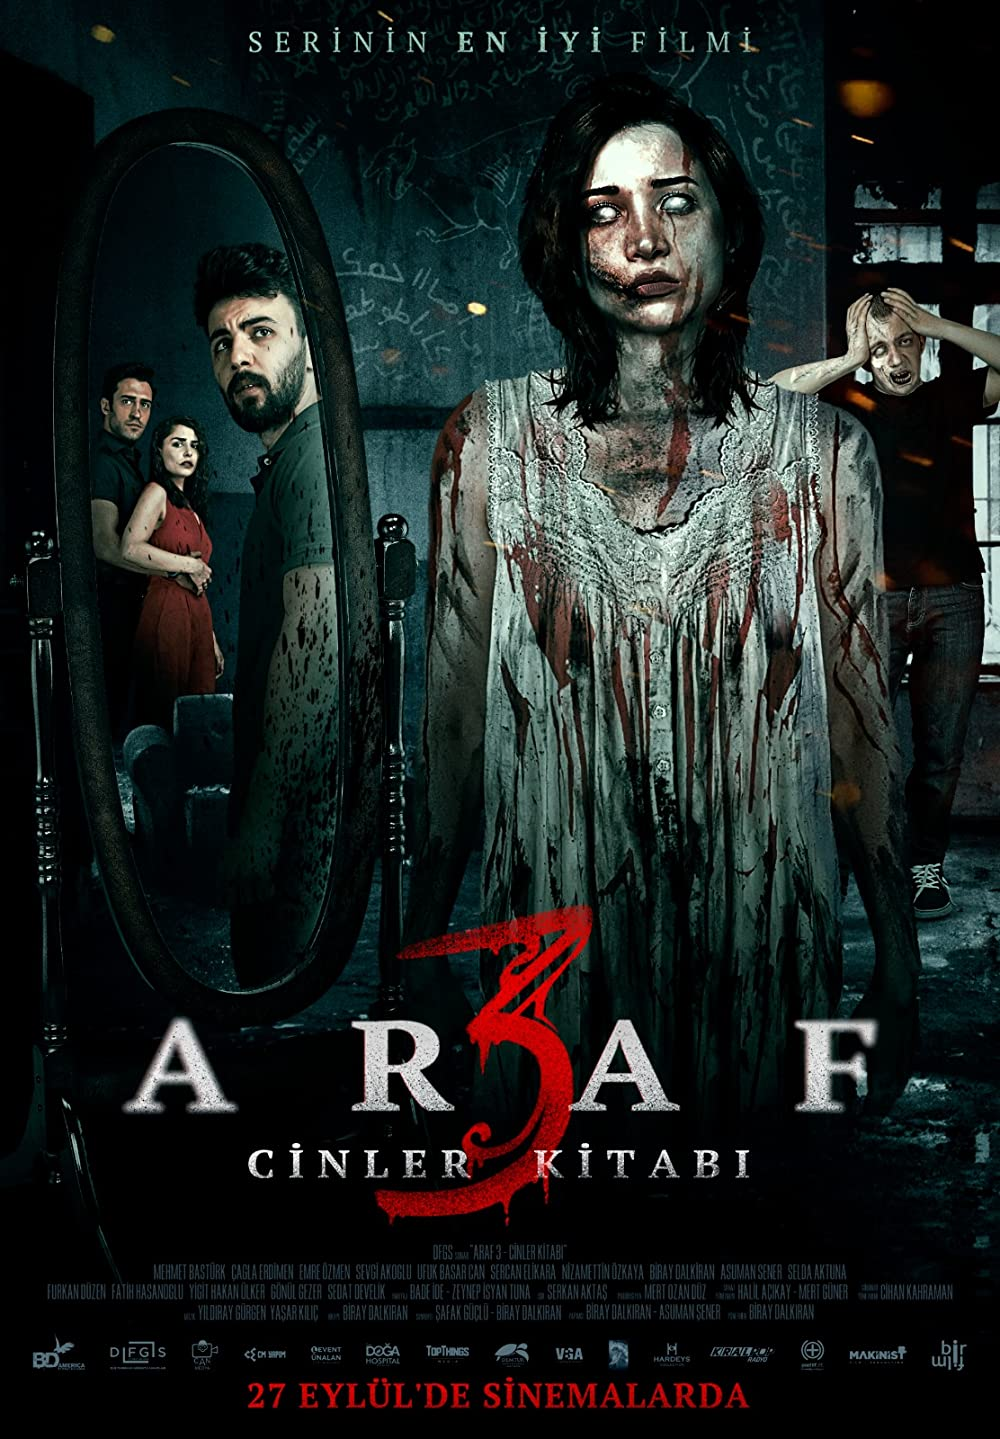 Araf 3: Cinler Kitabi 2019 Hindi Dual Audio 480p HDRip ESubs 300MB x264 AAC